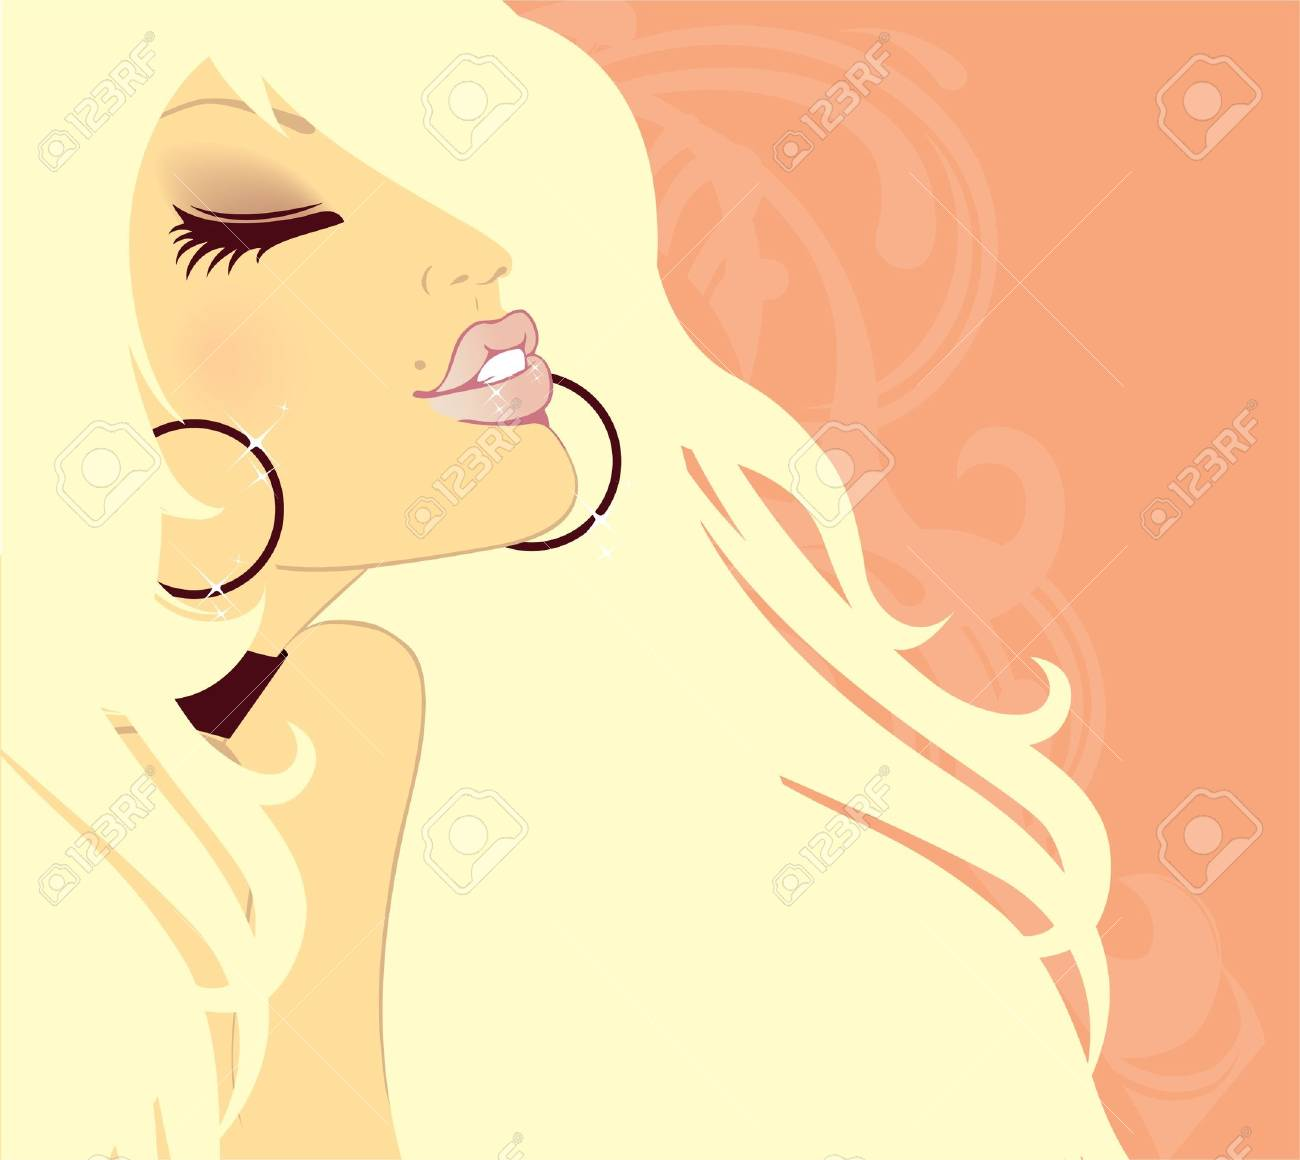 Vector illustration of Beauty floral woman Stock Vector - 15224586